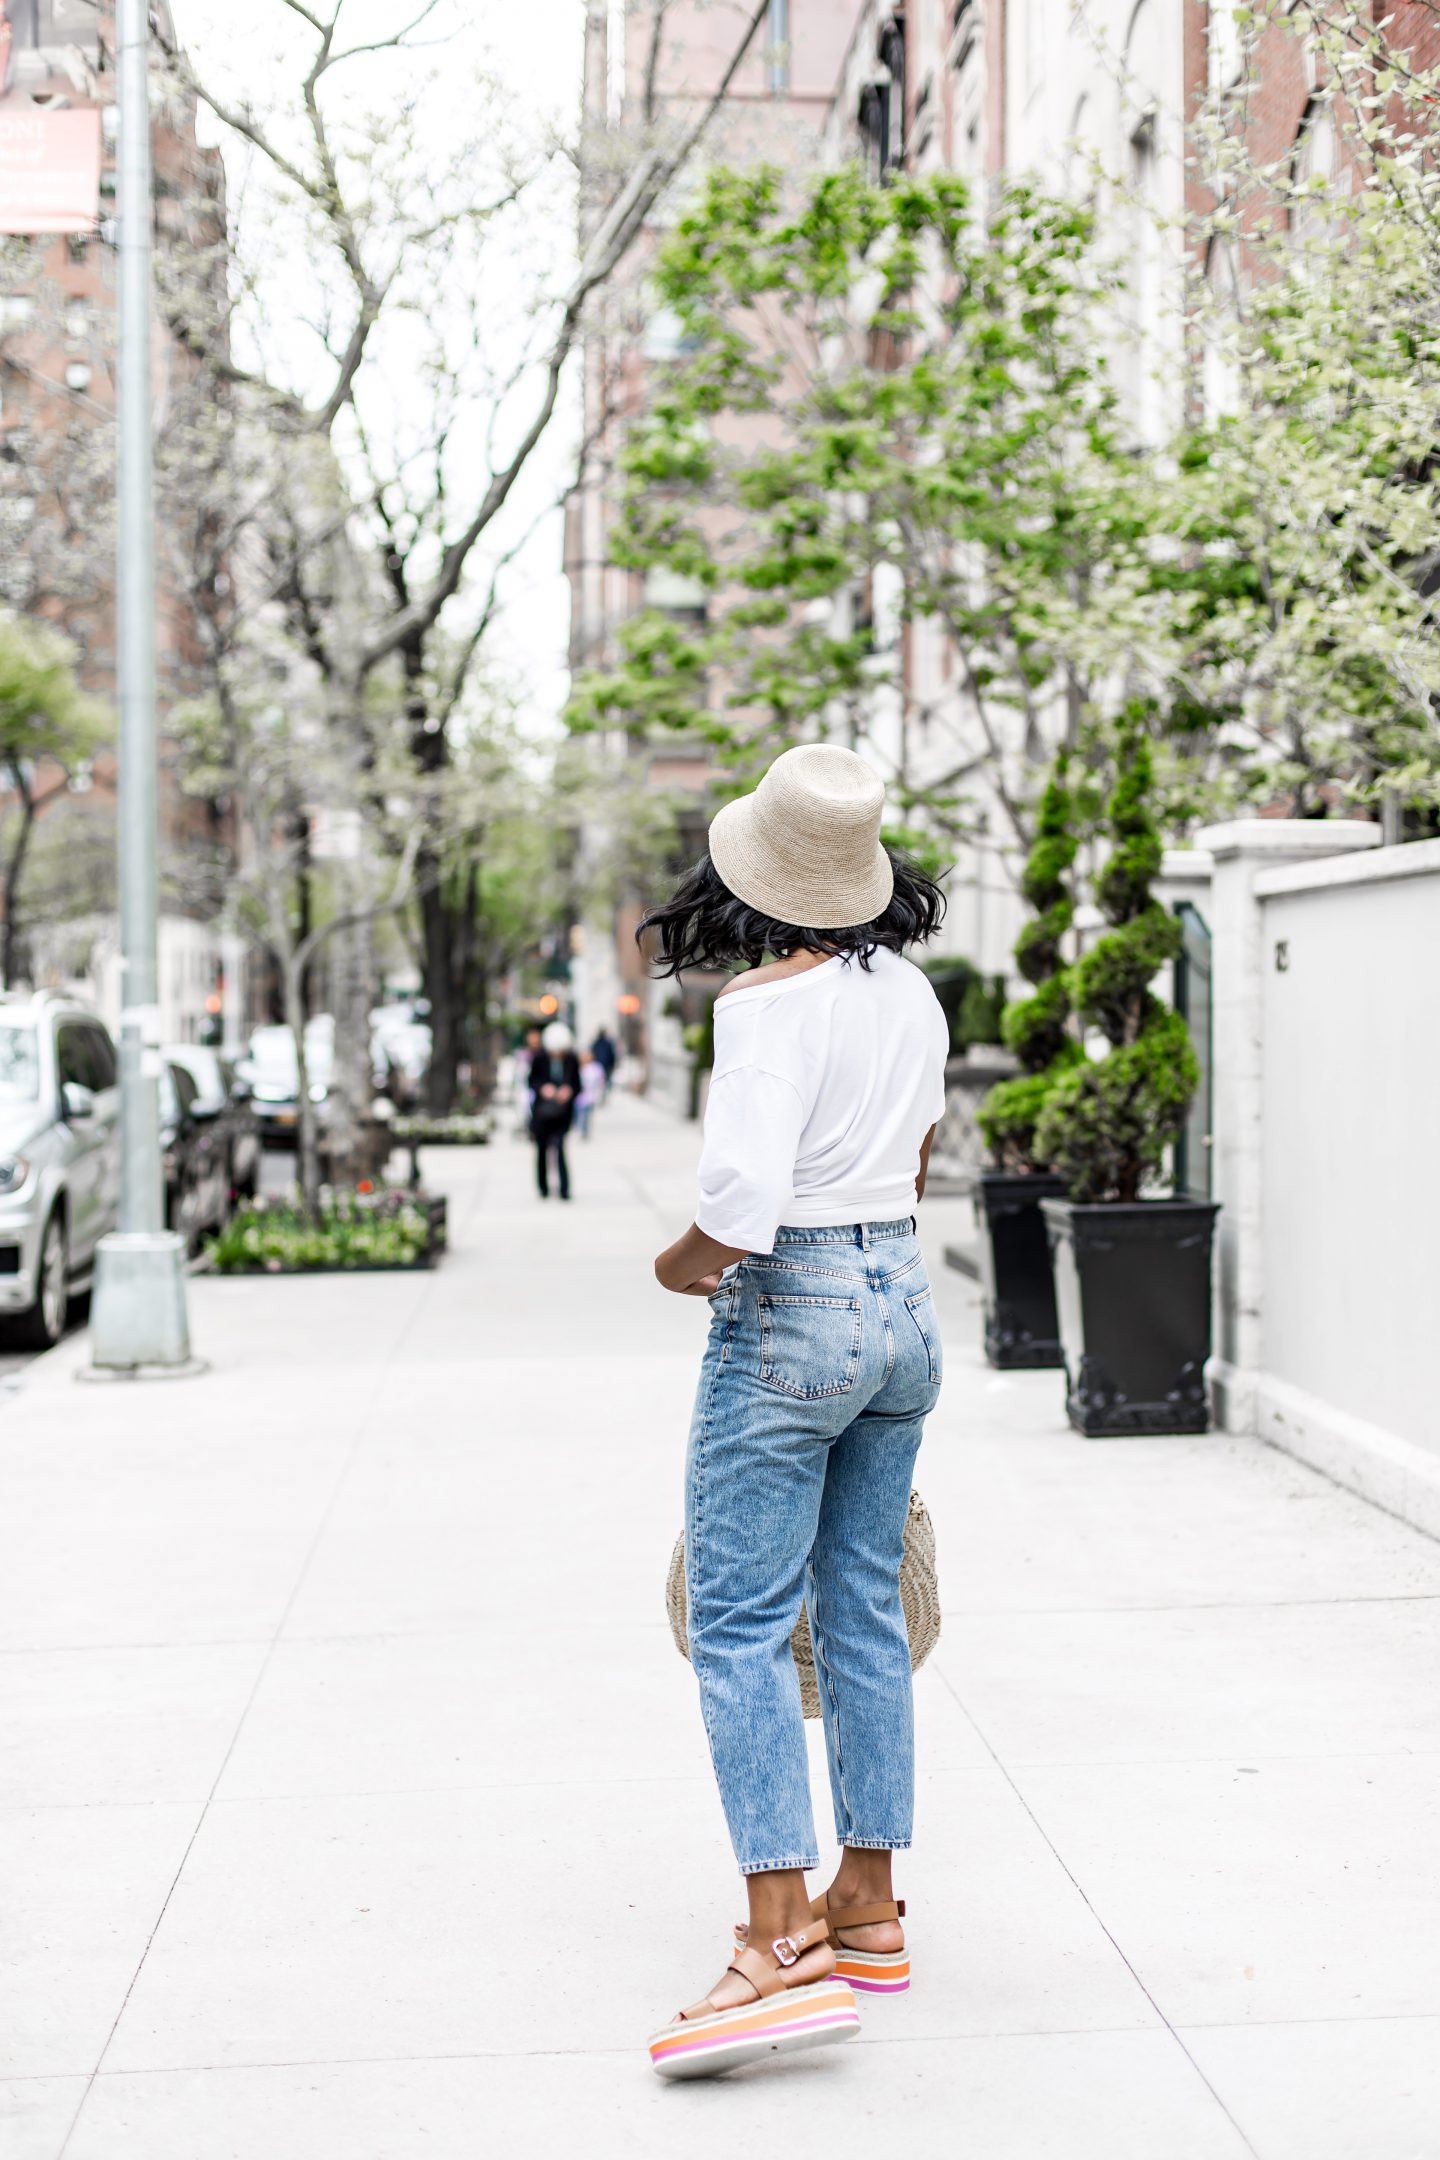 92ddd87d Hat's are having a moment. I've always loved a good hat. The sturdier the  better. Now that I'm preparing for summer and an upcoming beach vacation,  ...